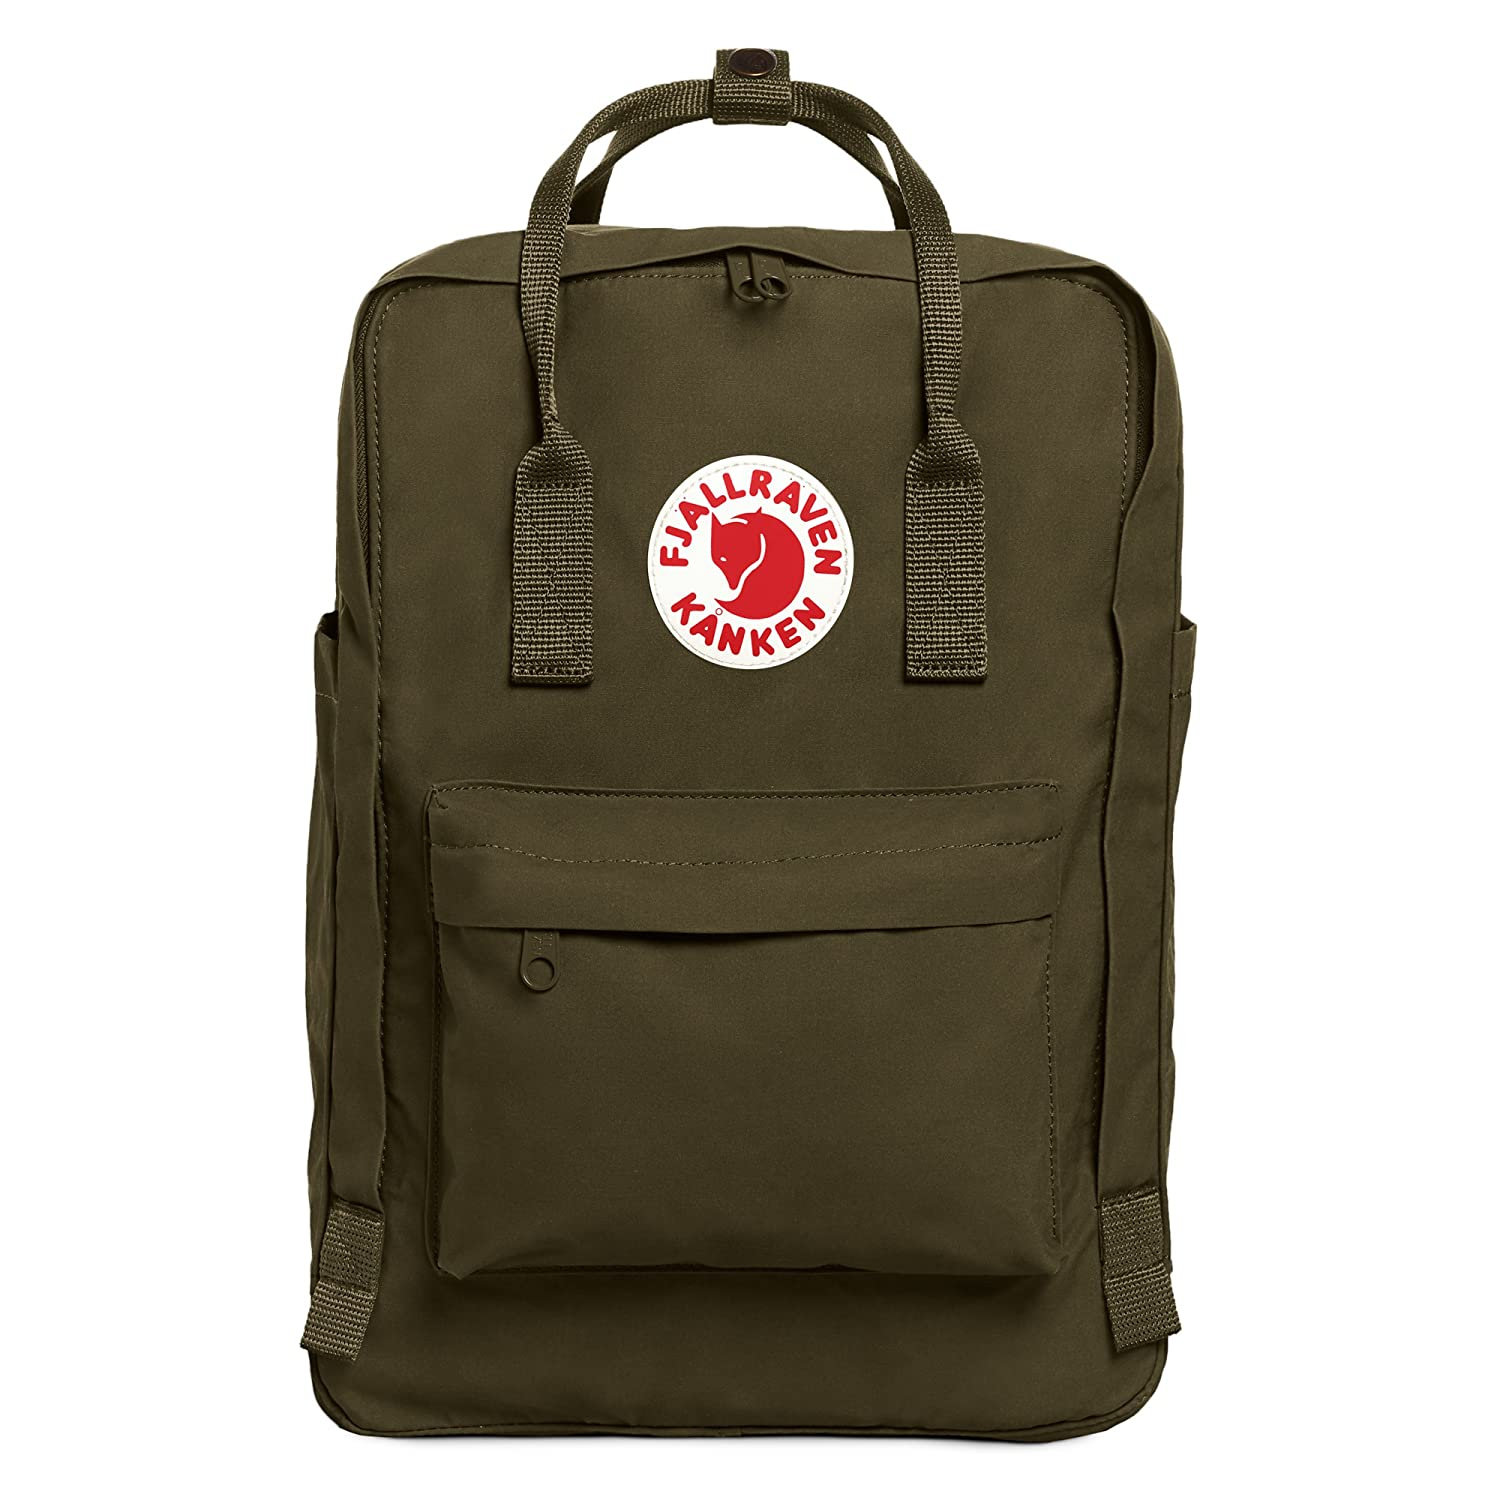 "The Fjällräven Känken 15"" Laptop Backpack travel product recommended by Nicky Omohundro on Lifney."